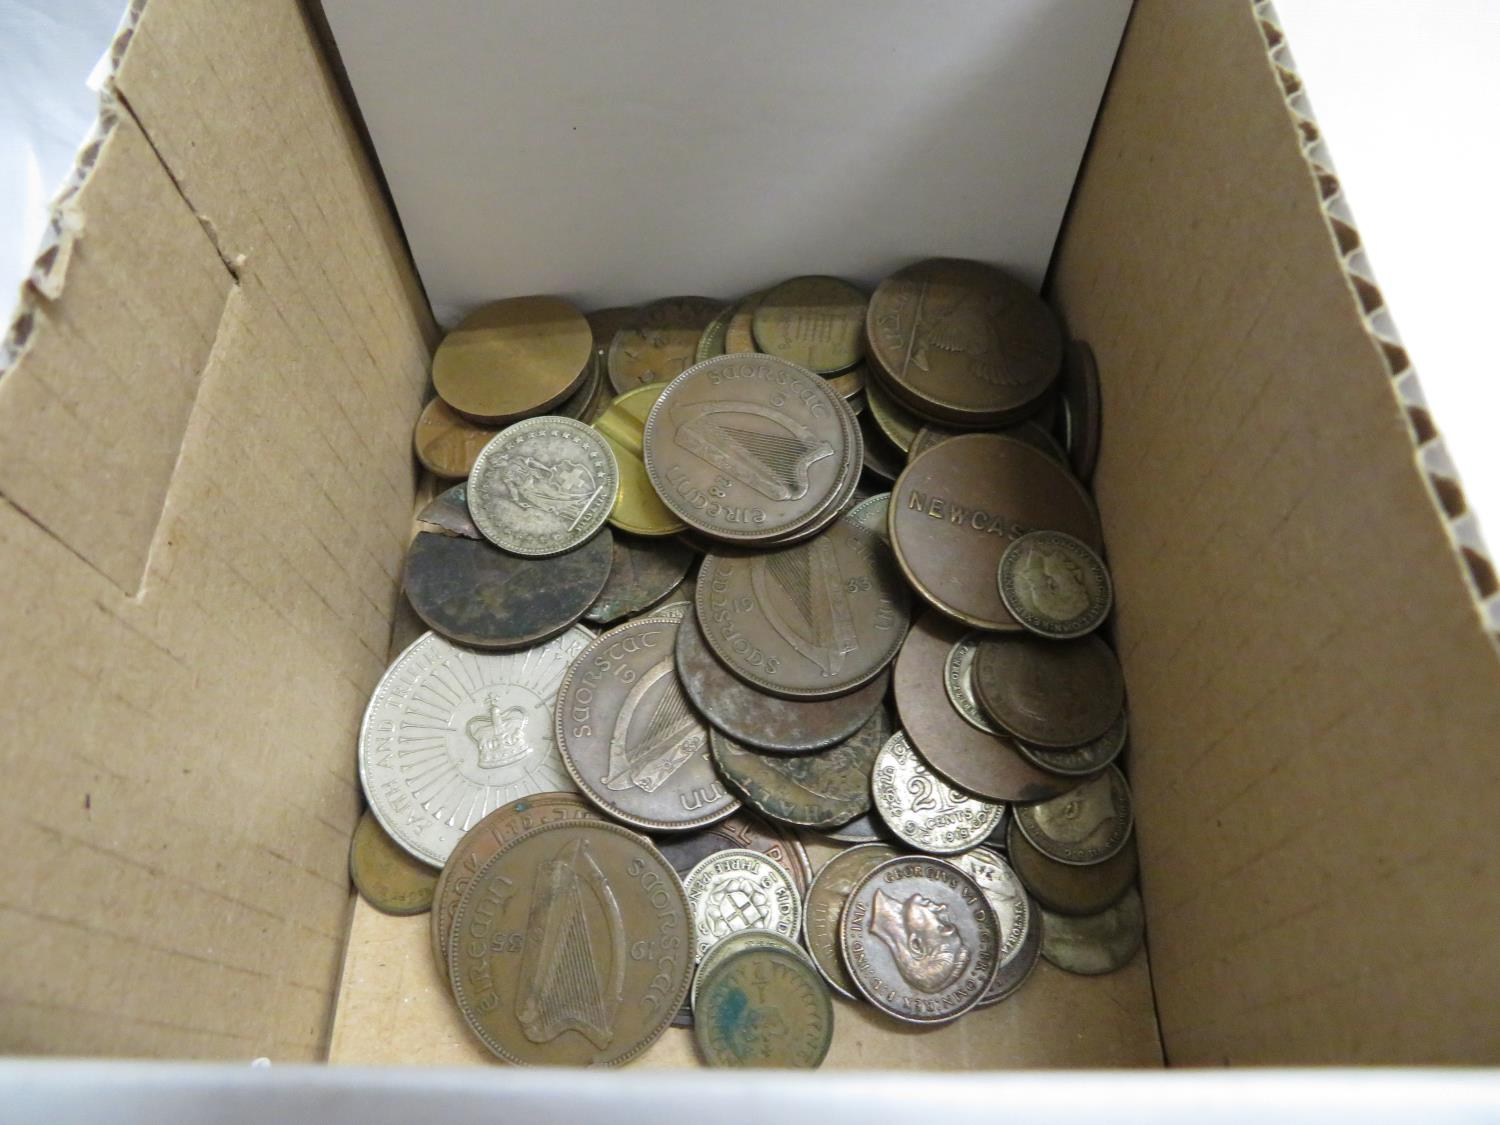 Lot 37 - Collection of silver coins, business tokens and other penny tokens and five pound coin